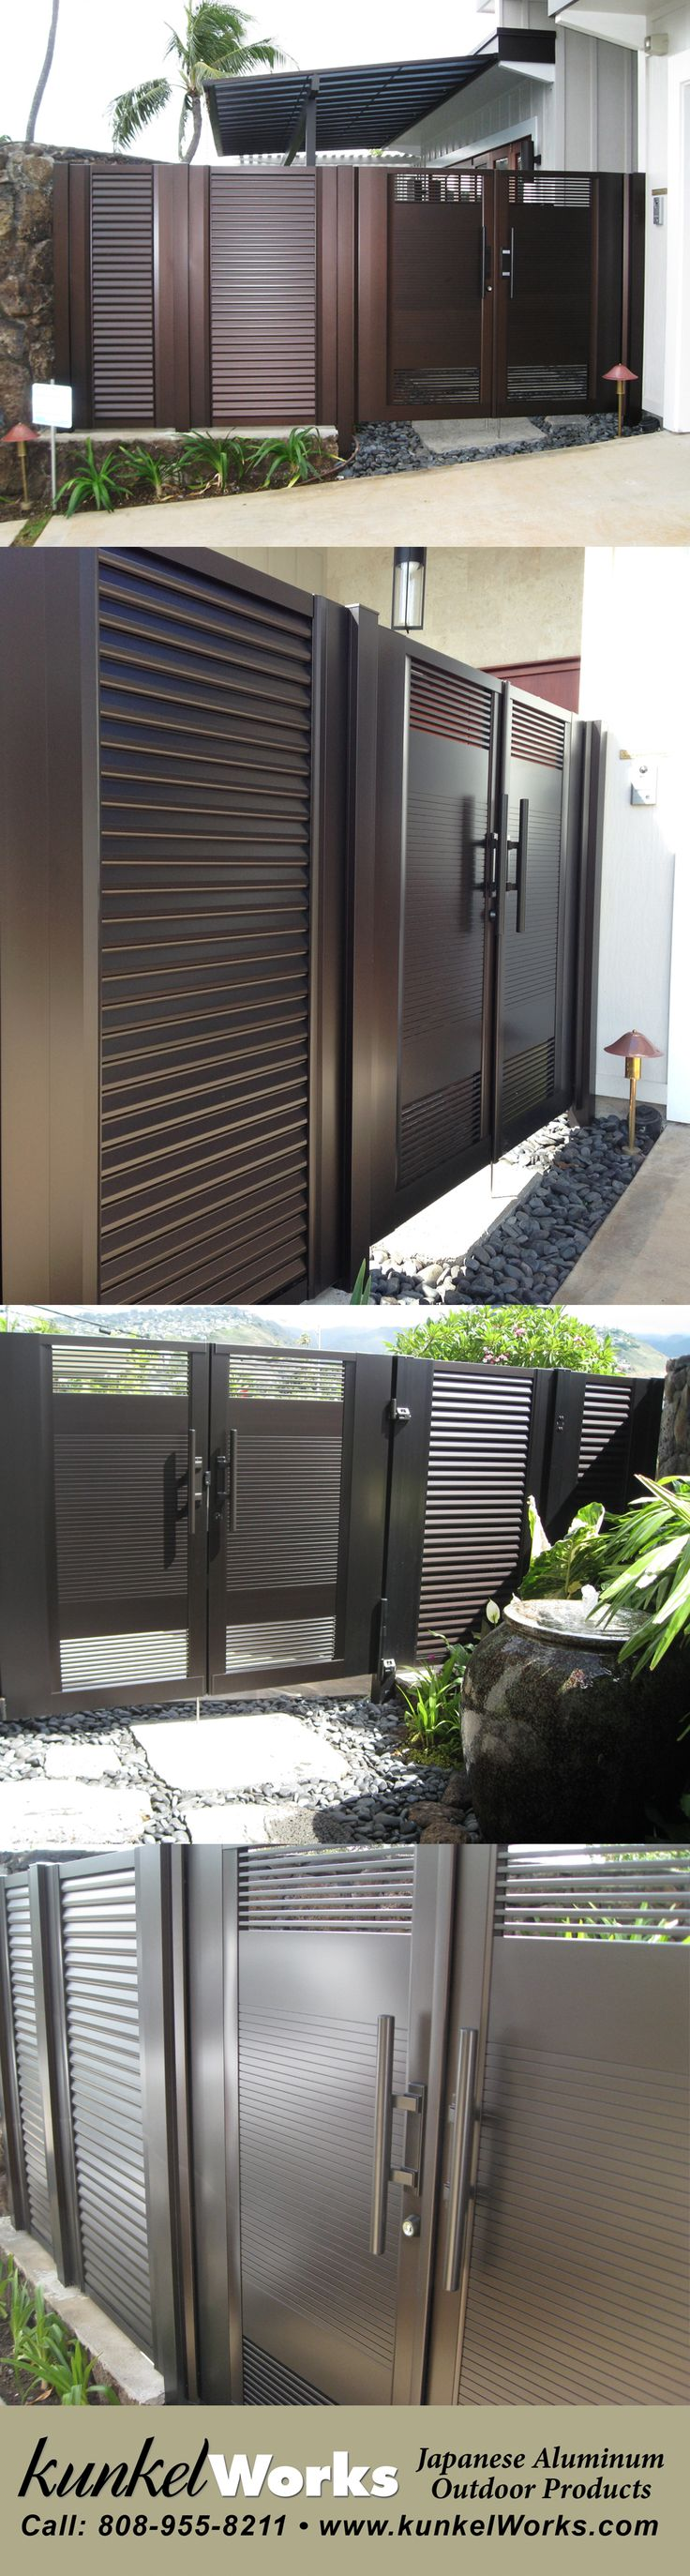 Kunkelworks represents Japanese aluminum alloy gates that are weather-proof, maintenance-free and corrosion resistant. These stunning finished products provide a stylish perimeter to match the aesthetic of the home. With several colors to choose from, as well as various privacy options- we have a gate and fence for every home.